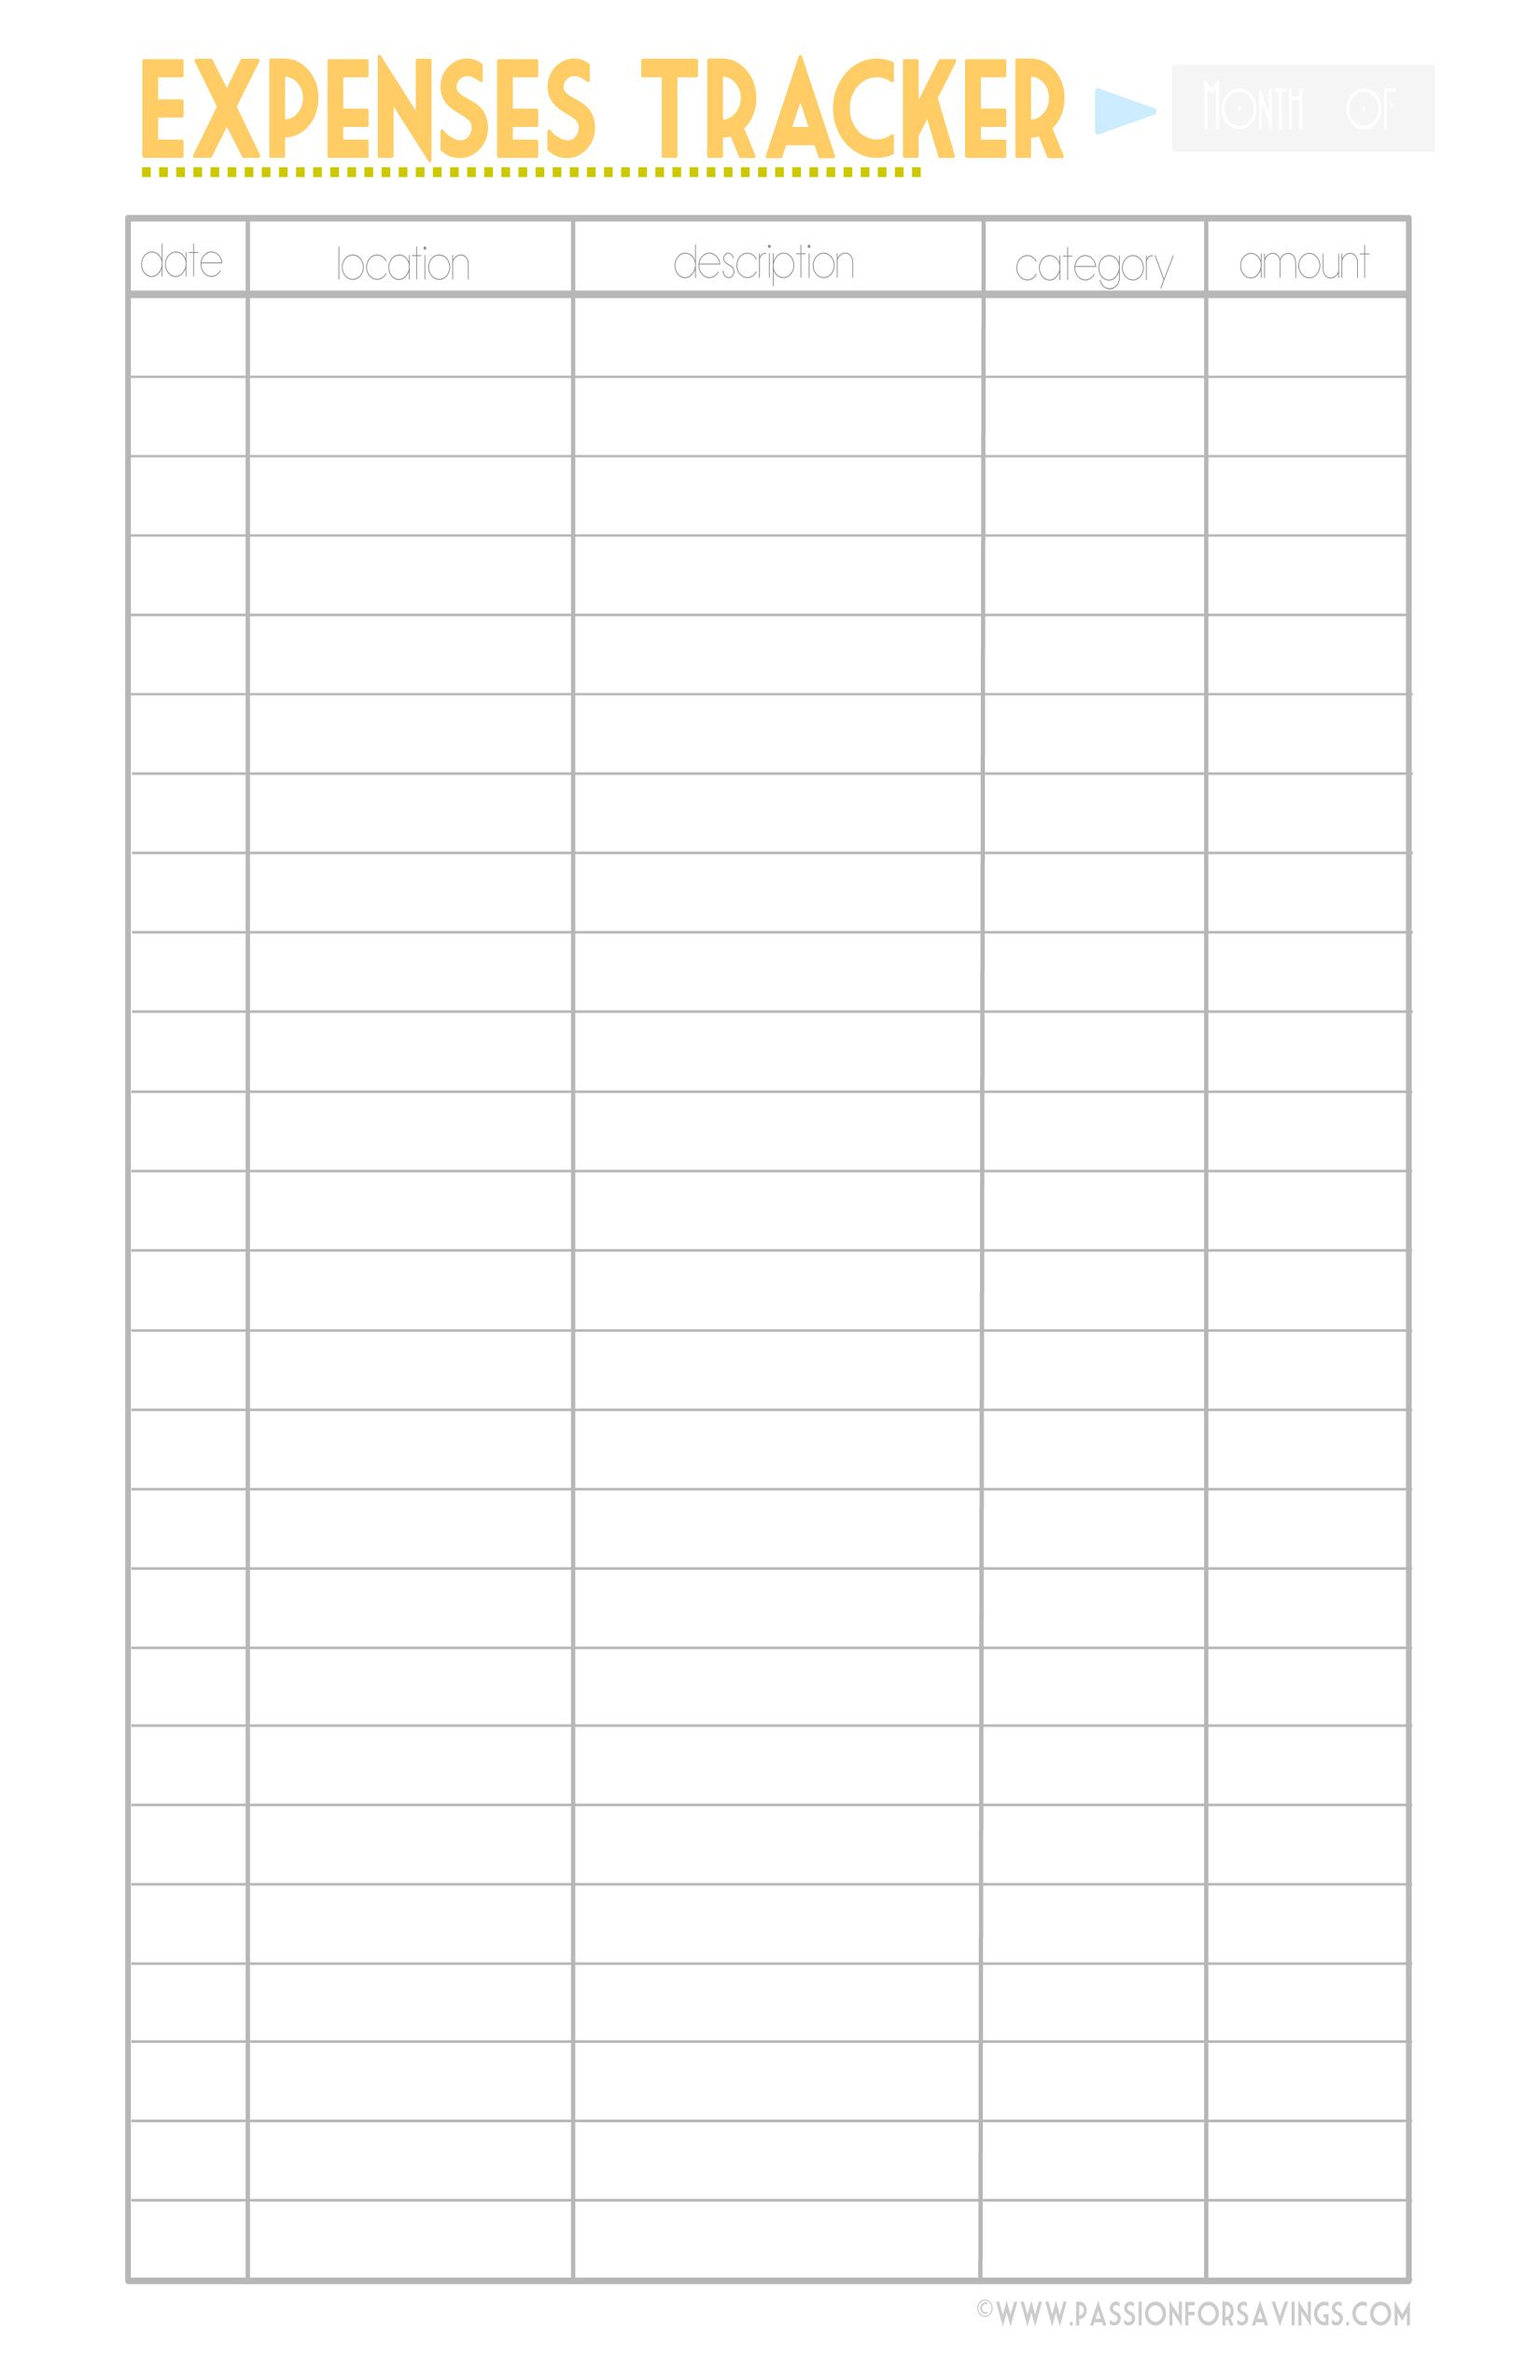 Budget Printable With Images Budget Printables Expense